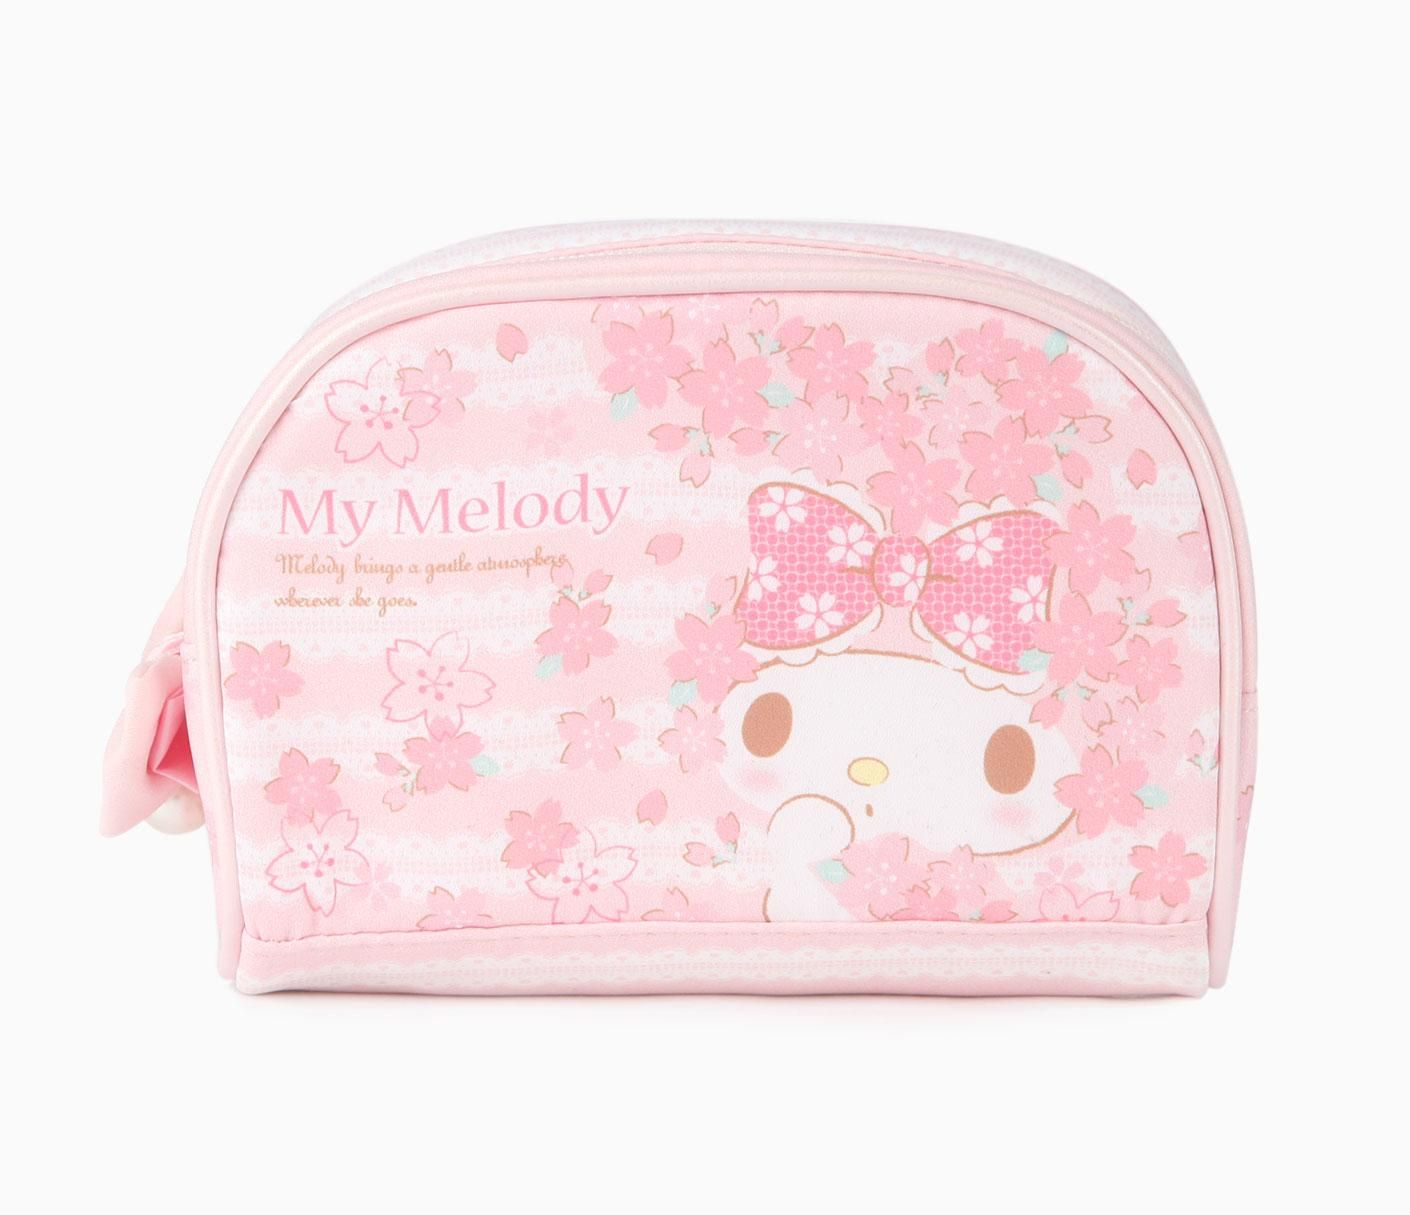 My Melody Pouch Cherry Blossom My melody, Pouch, Purse